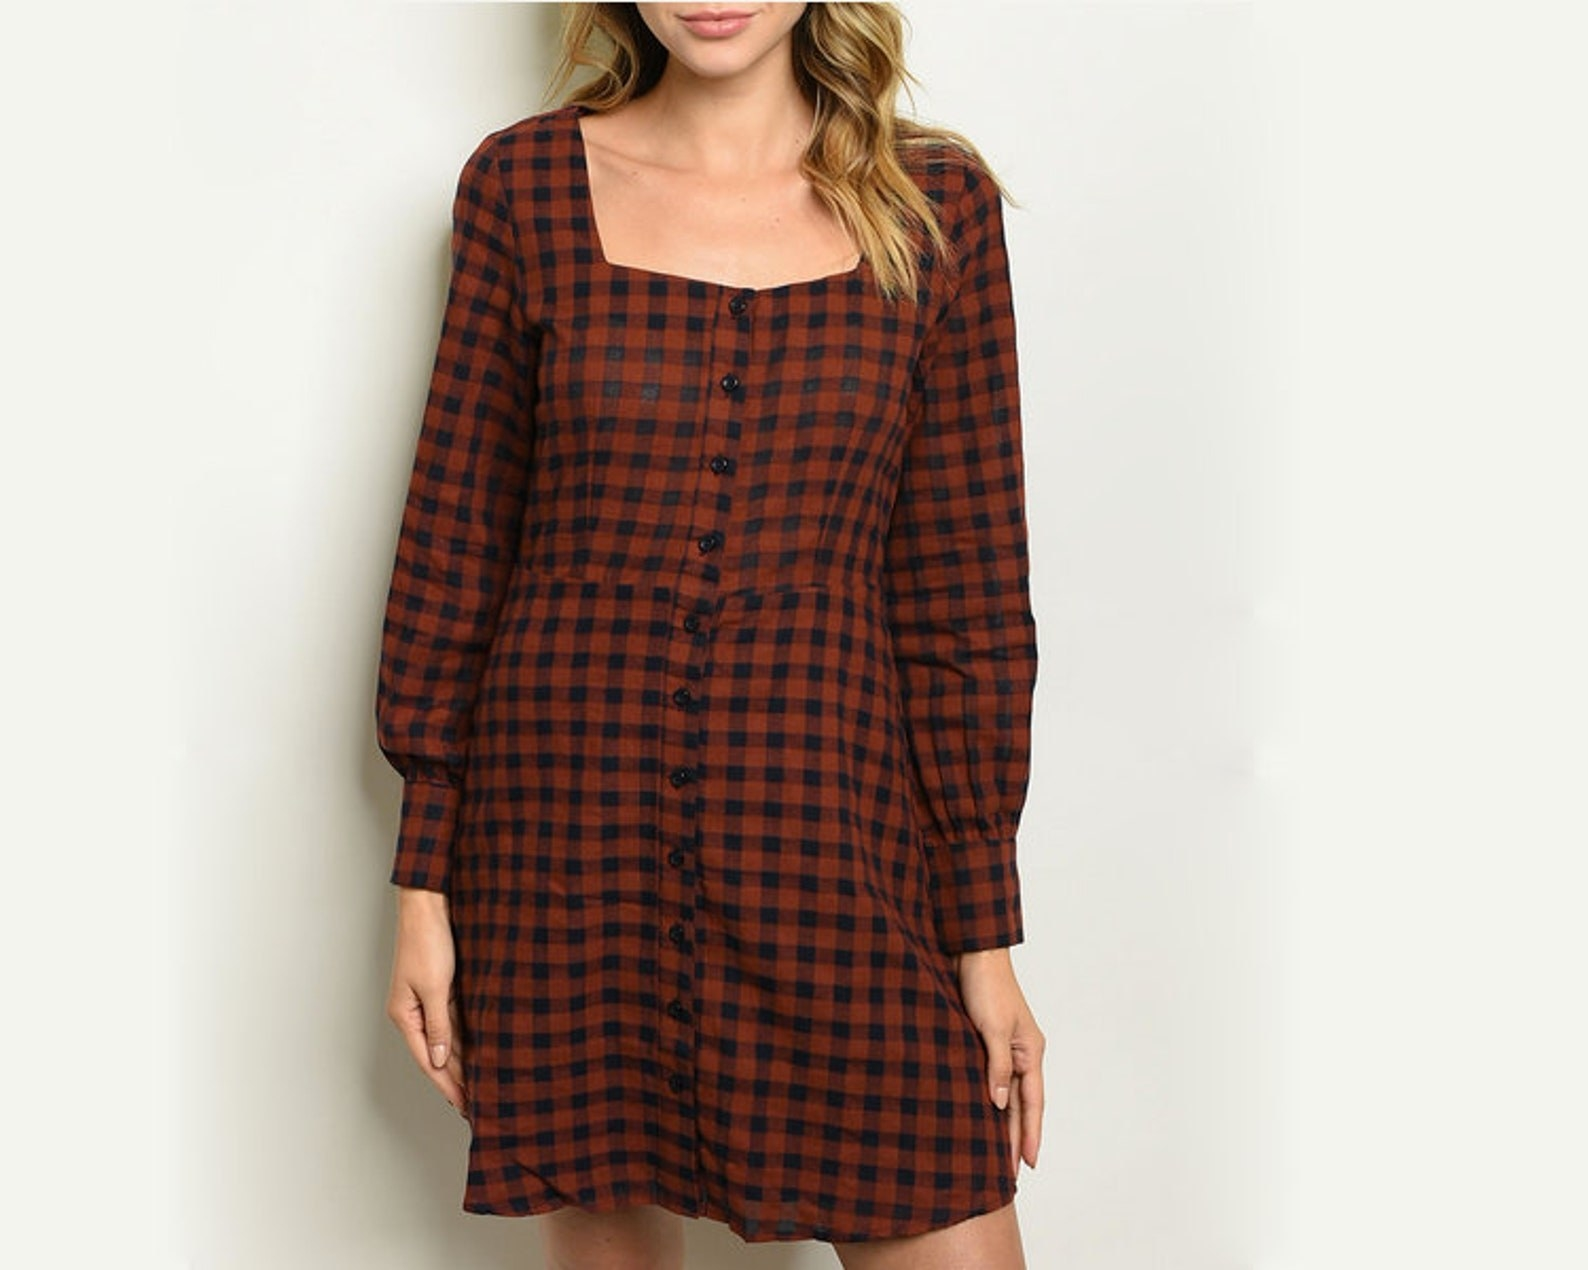 model in long sleeve brown and black gingham dress